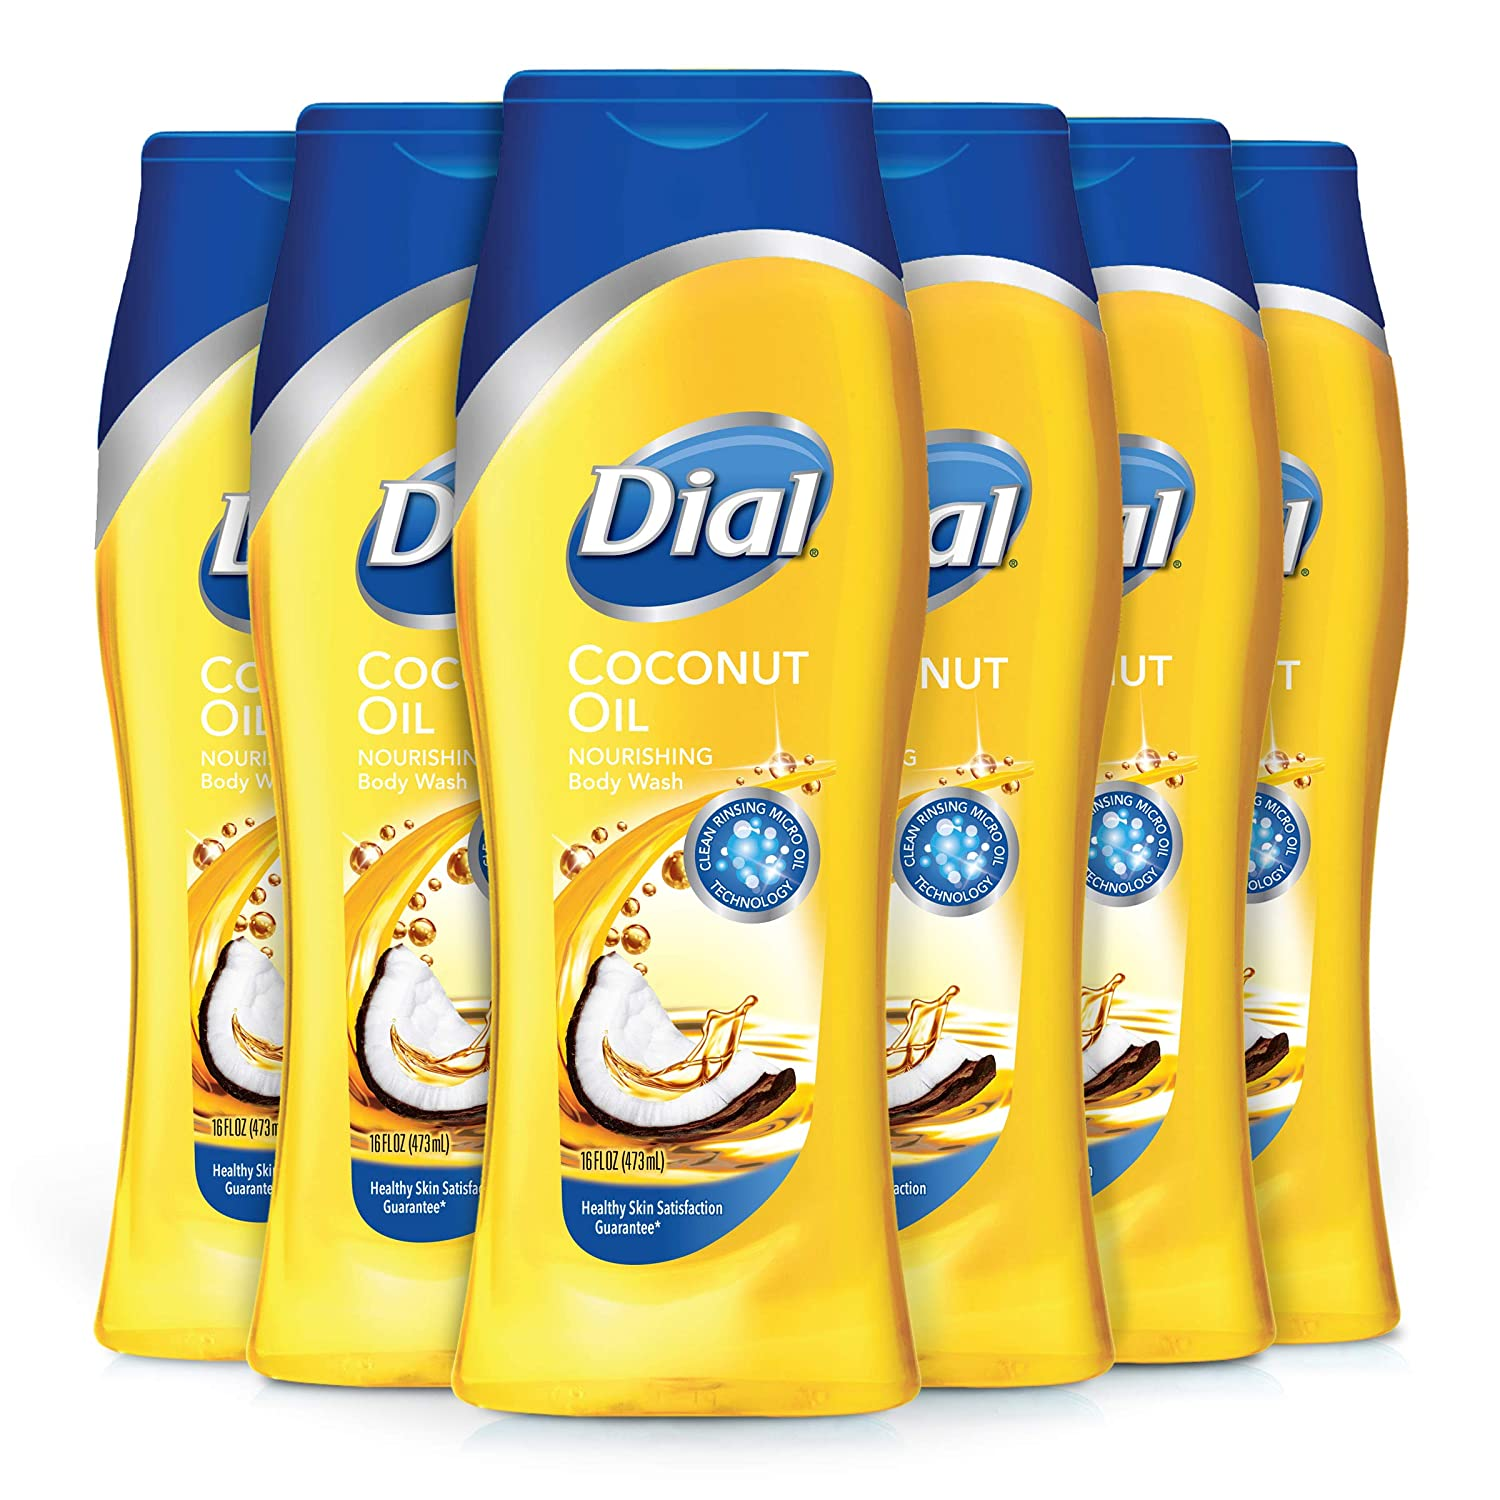 Dial Body Wash, Coconut Oil, 16 Ounces (Pack of 6)